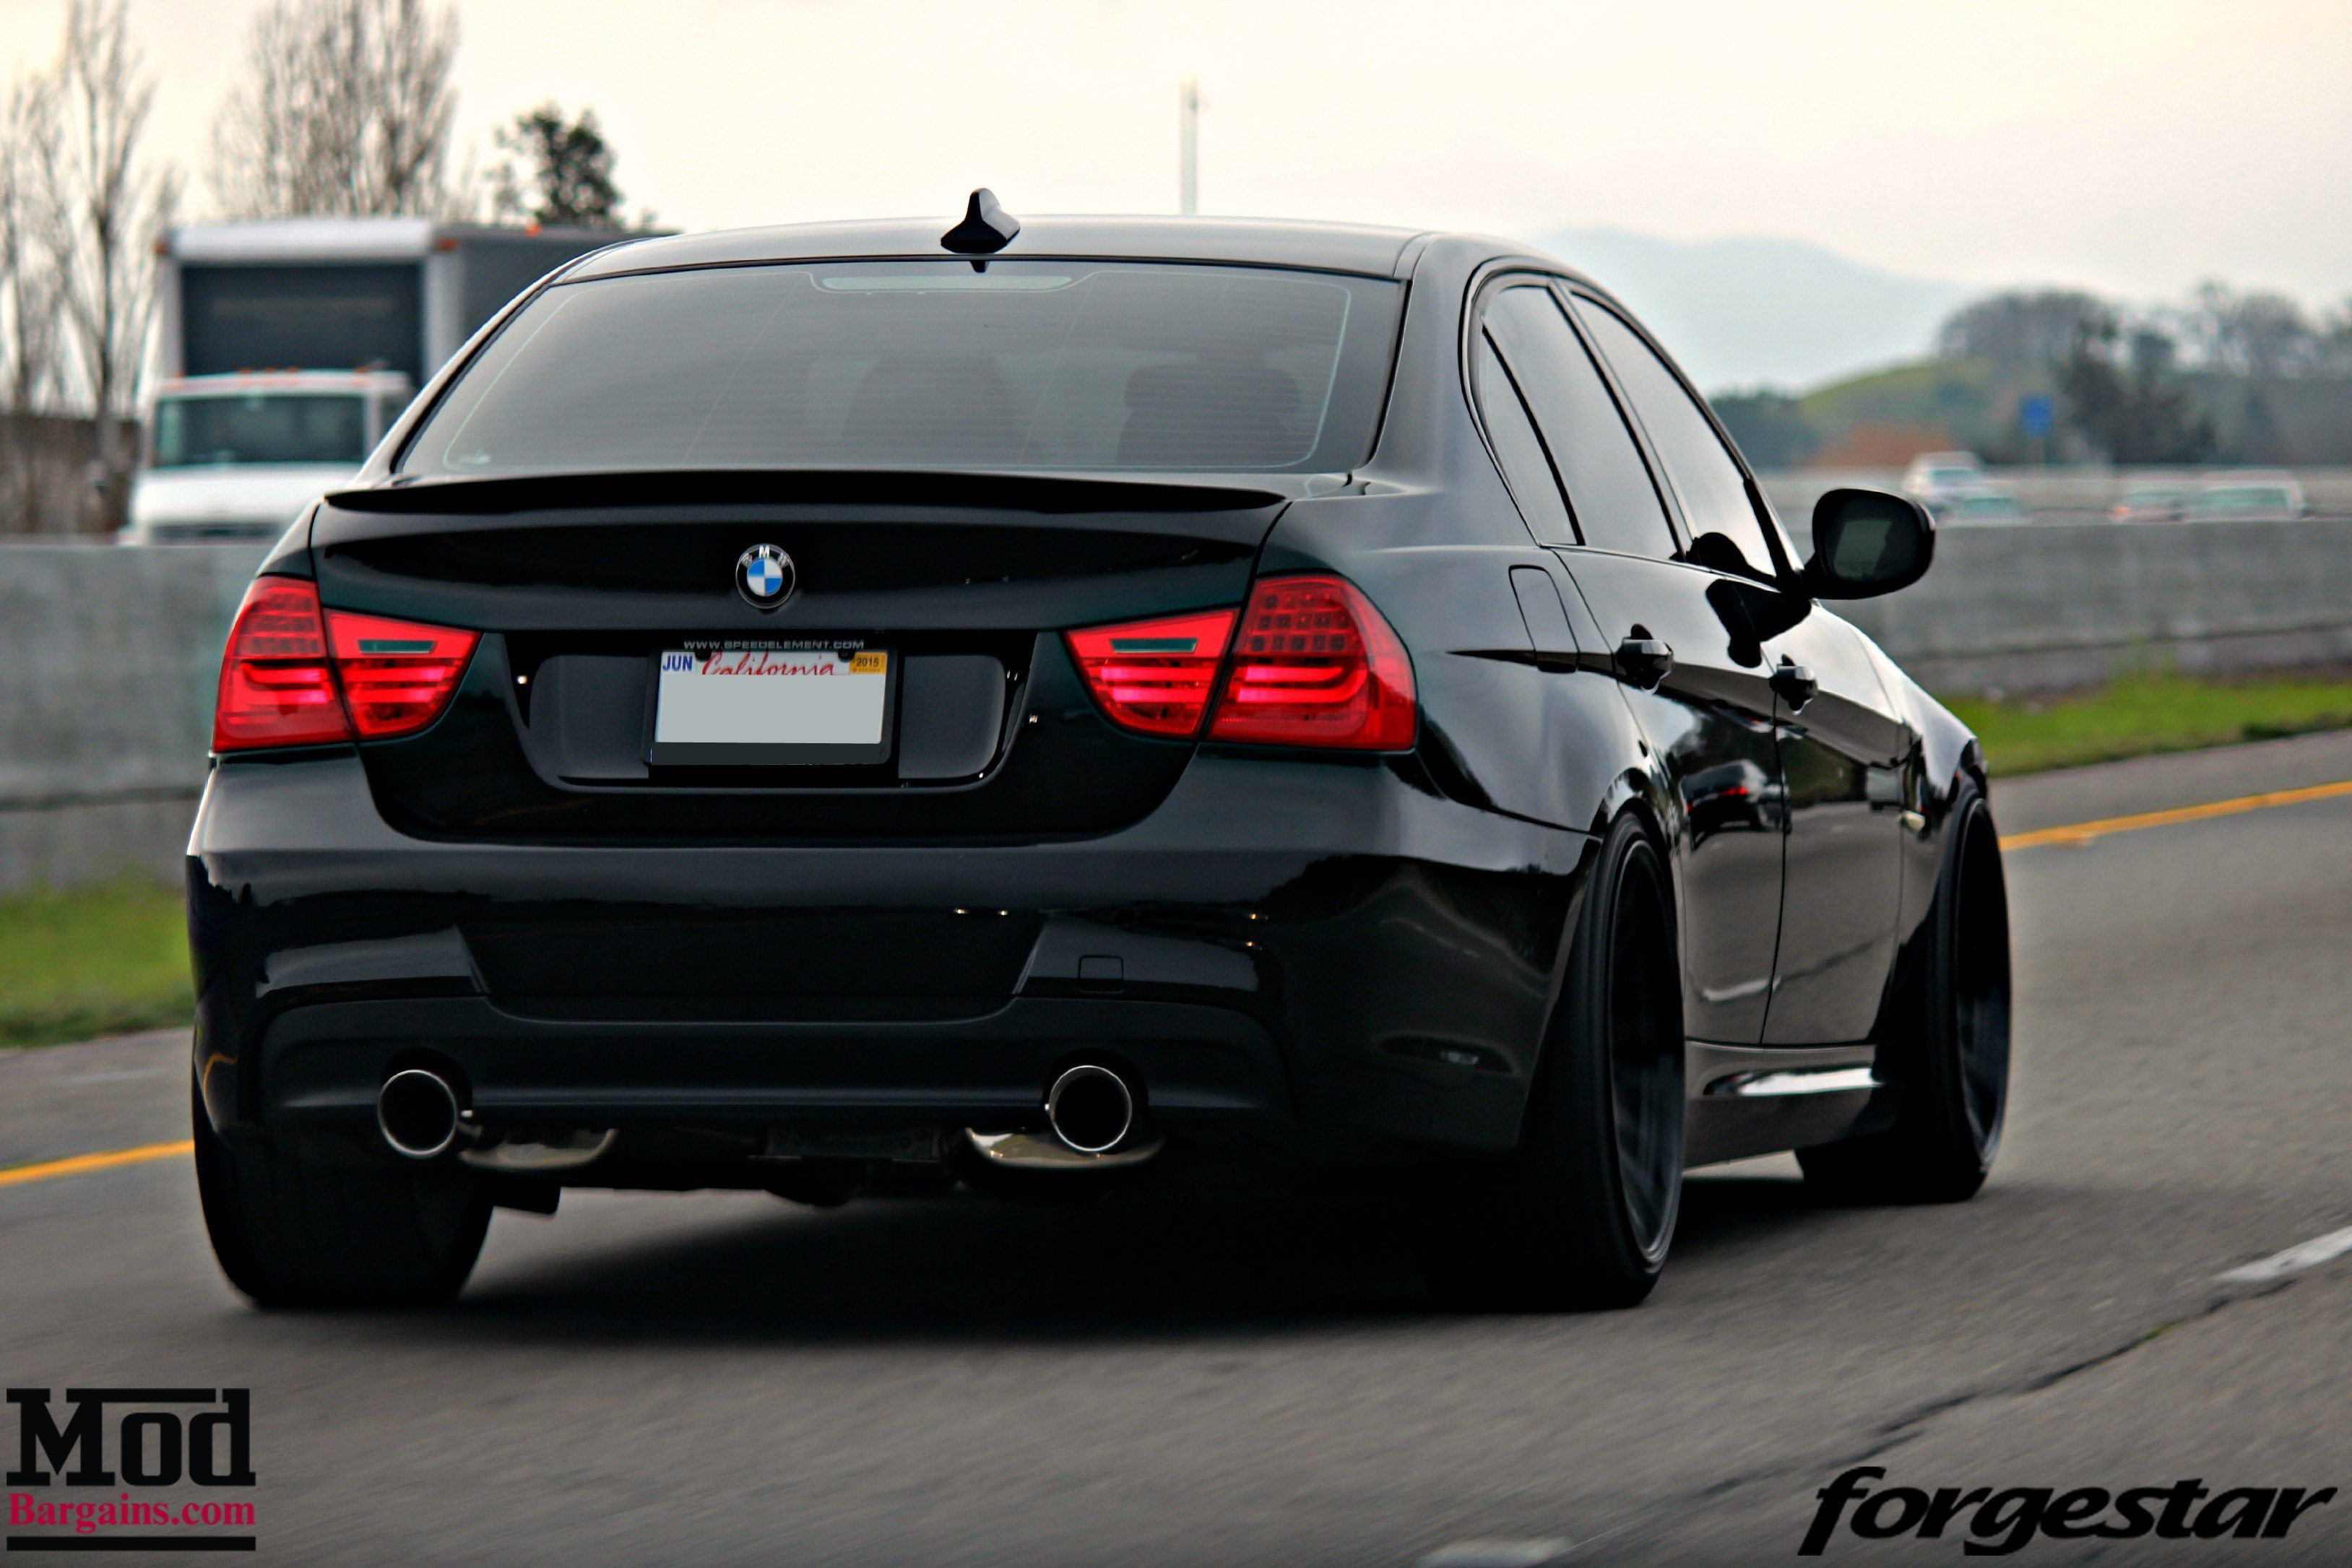 Cole Durden's E90 335i Brings The Fight on F14